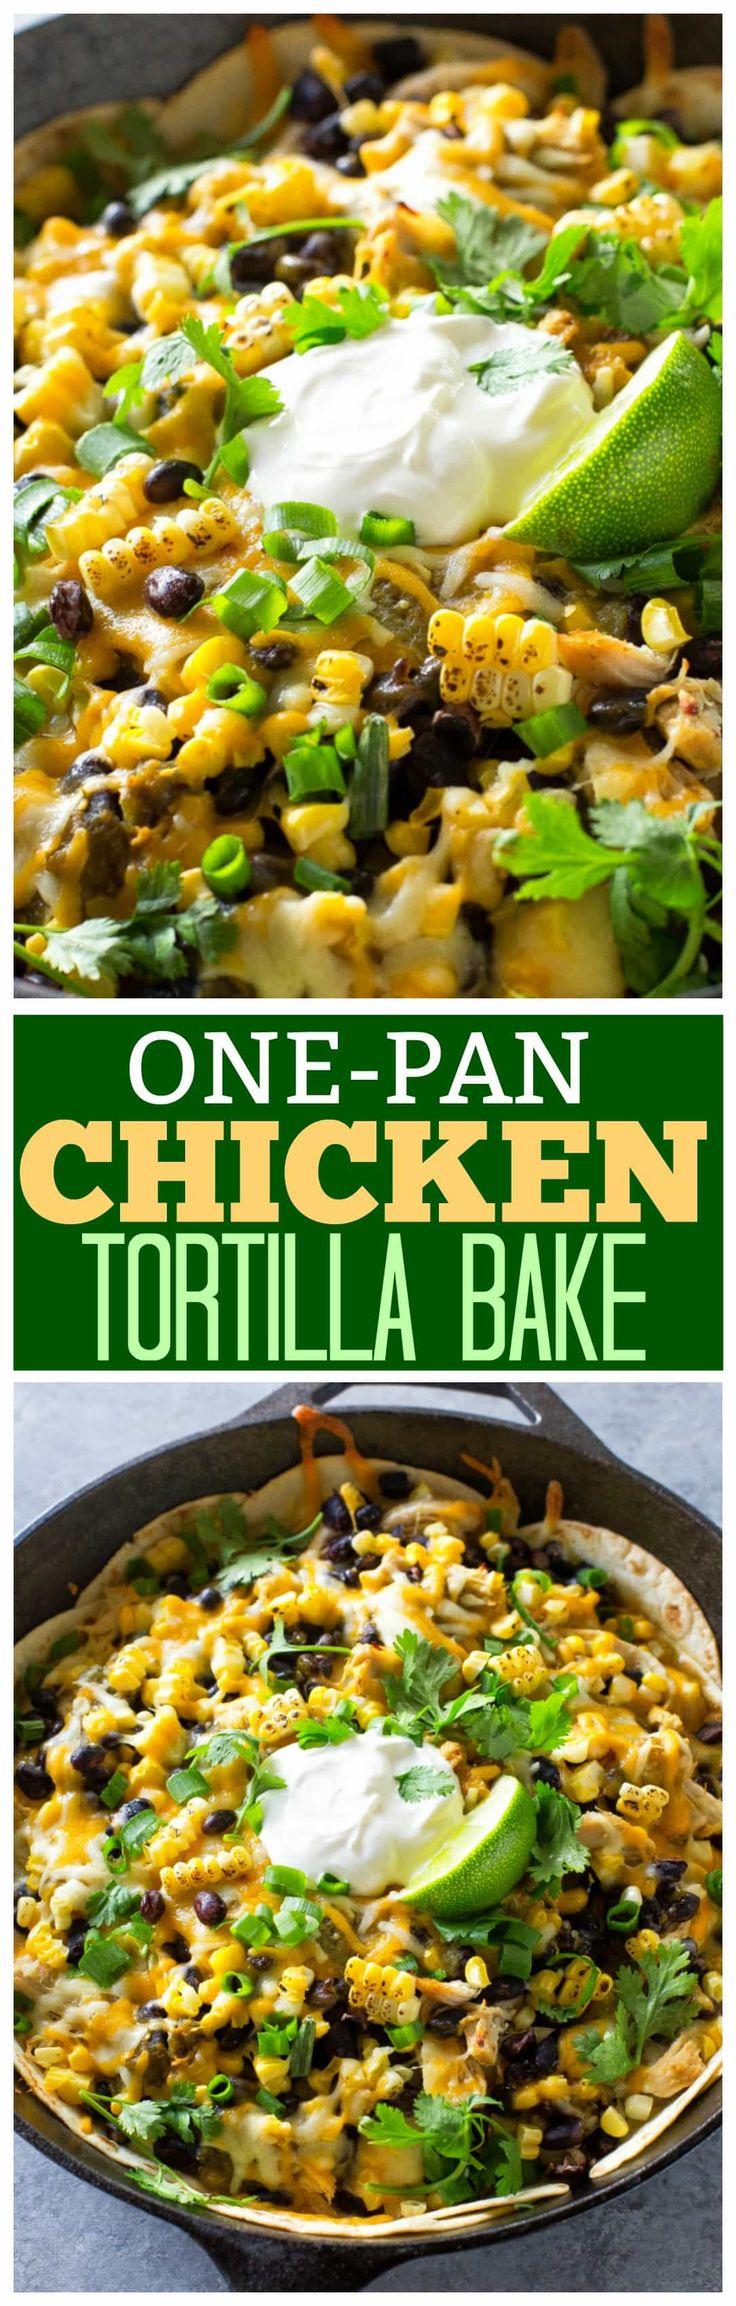 This One-Pan Chicken Tortilla Bakeis a spicy Mexican dinner with only 7 ingredients. Layers of tortilla, chicken, black beans, and corn with lots of cheese in between. the-girl-who-ate-everything.com